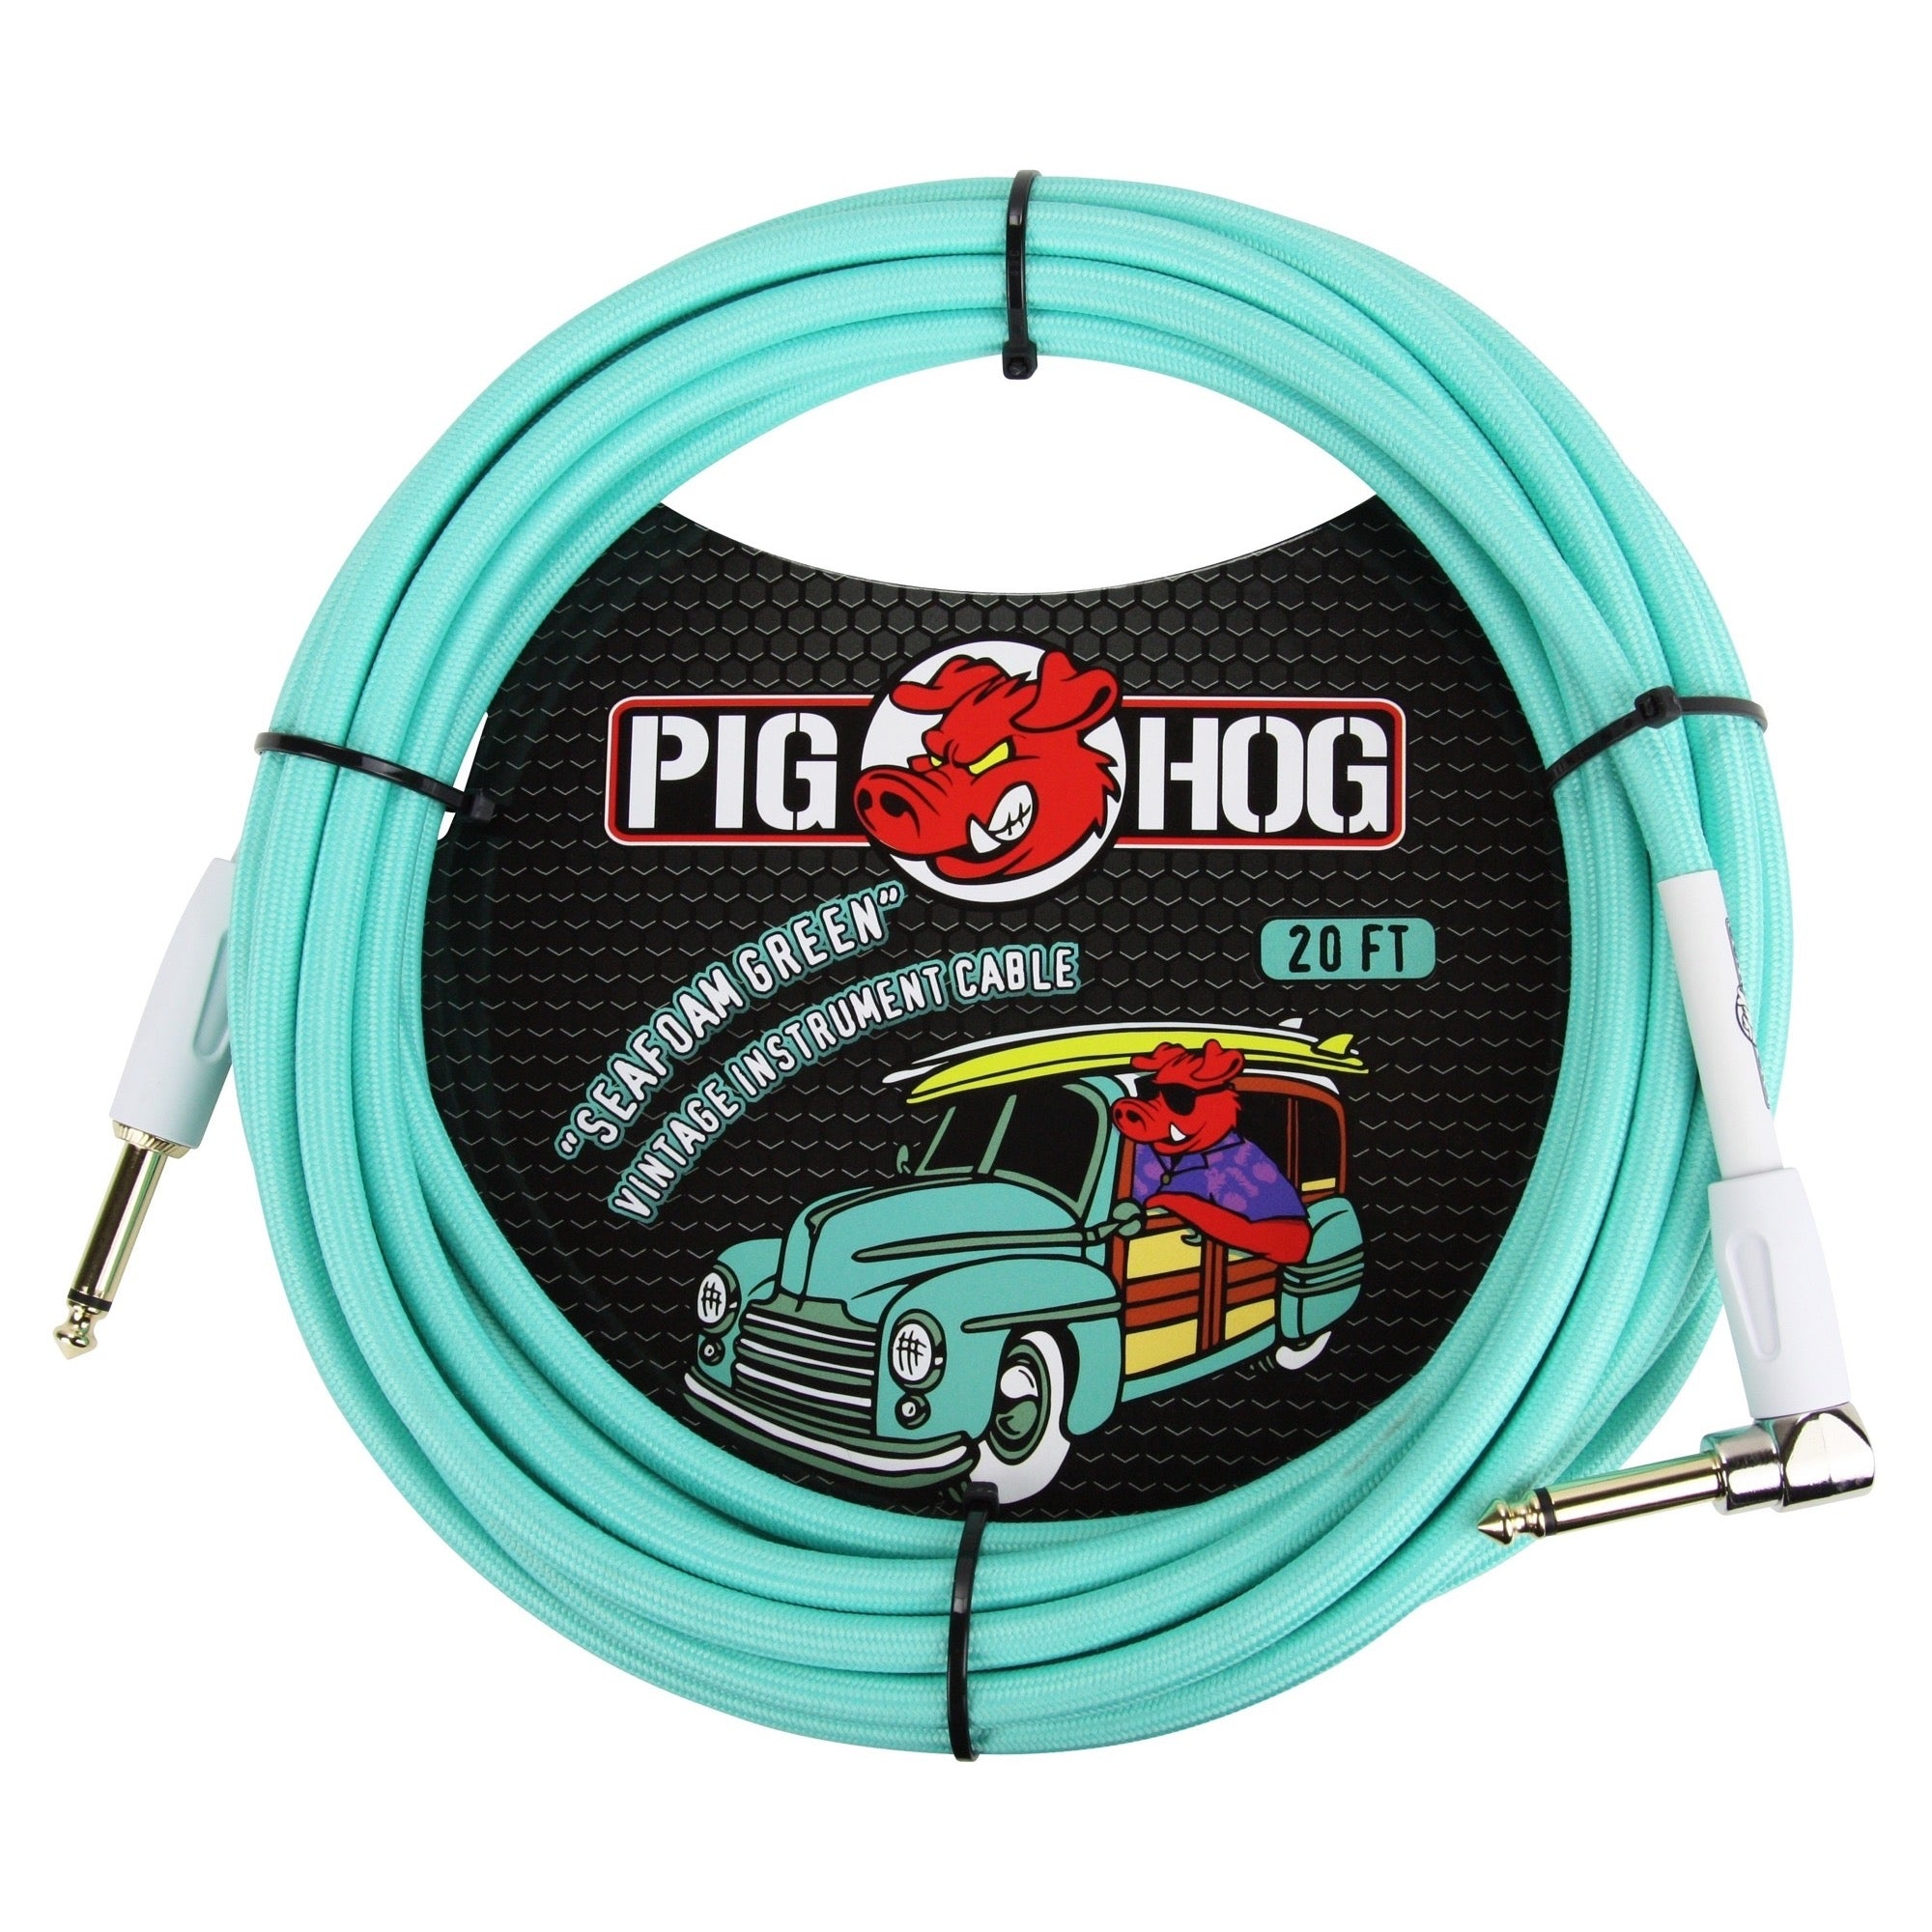 Pig Hog Color Instrument Cable, 1/4 Inch Straight to 1/4 Inch Right Angle, Sea Foam Green, 20'